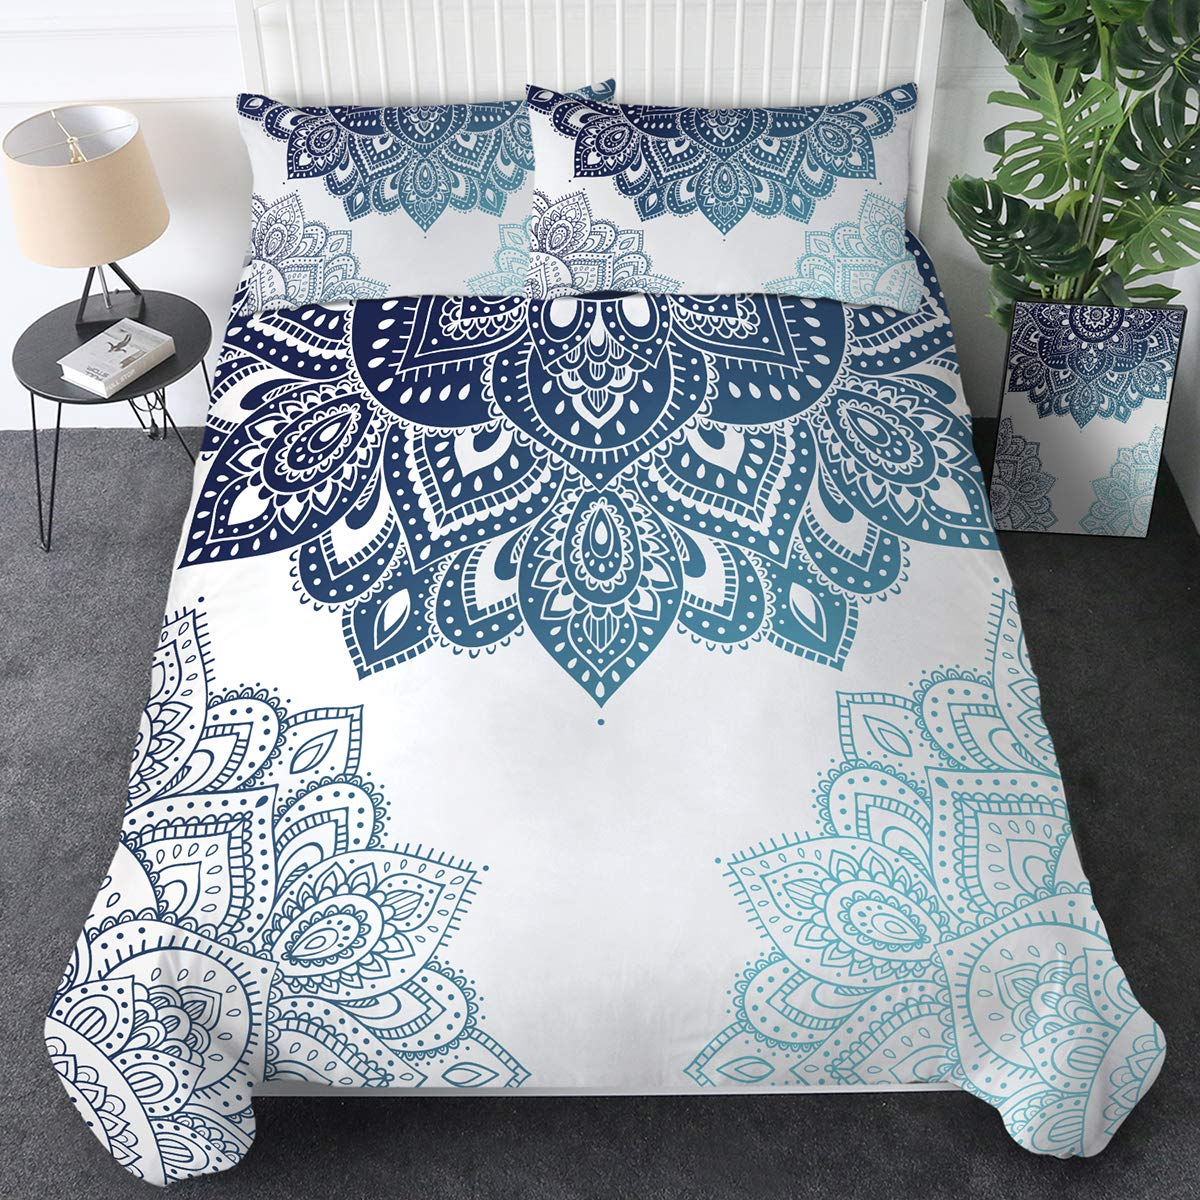 Sleepwish Blue White Floral Mandala Bedding Sets Bohemian Geometric Bedspread 3 Pieces Boho Chic Duvet Cover with Zipper Closure and Corner Ties (Queen)